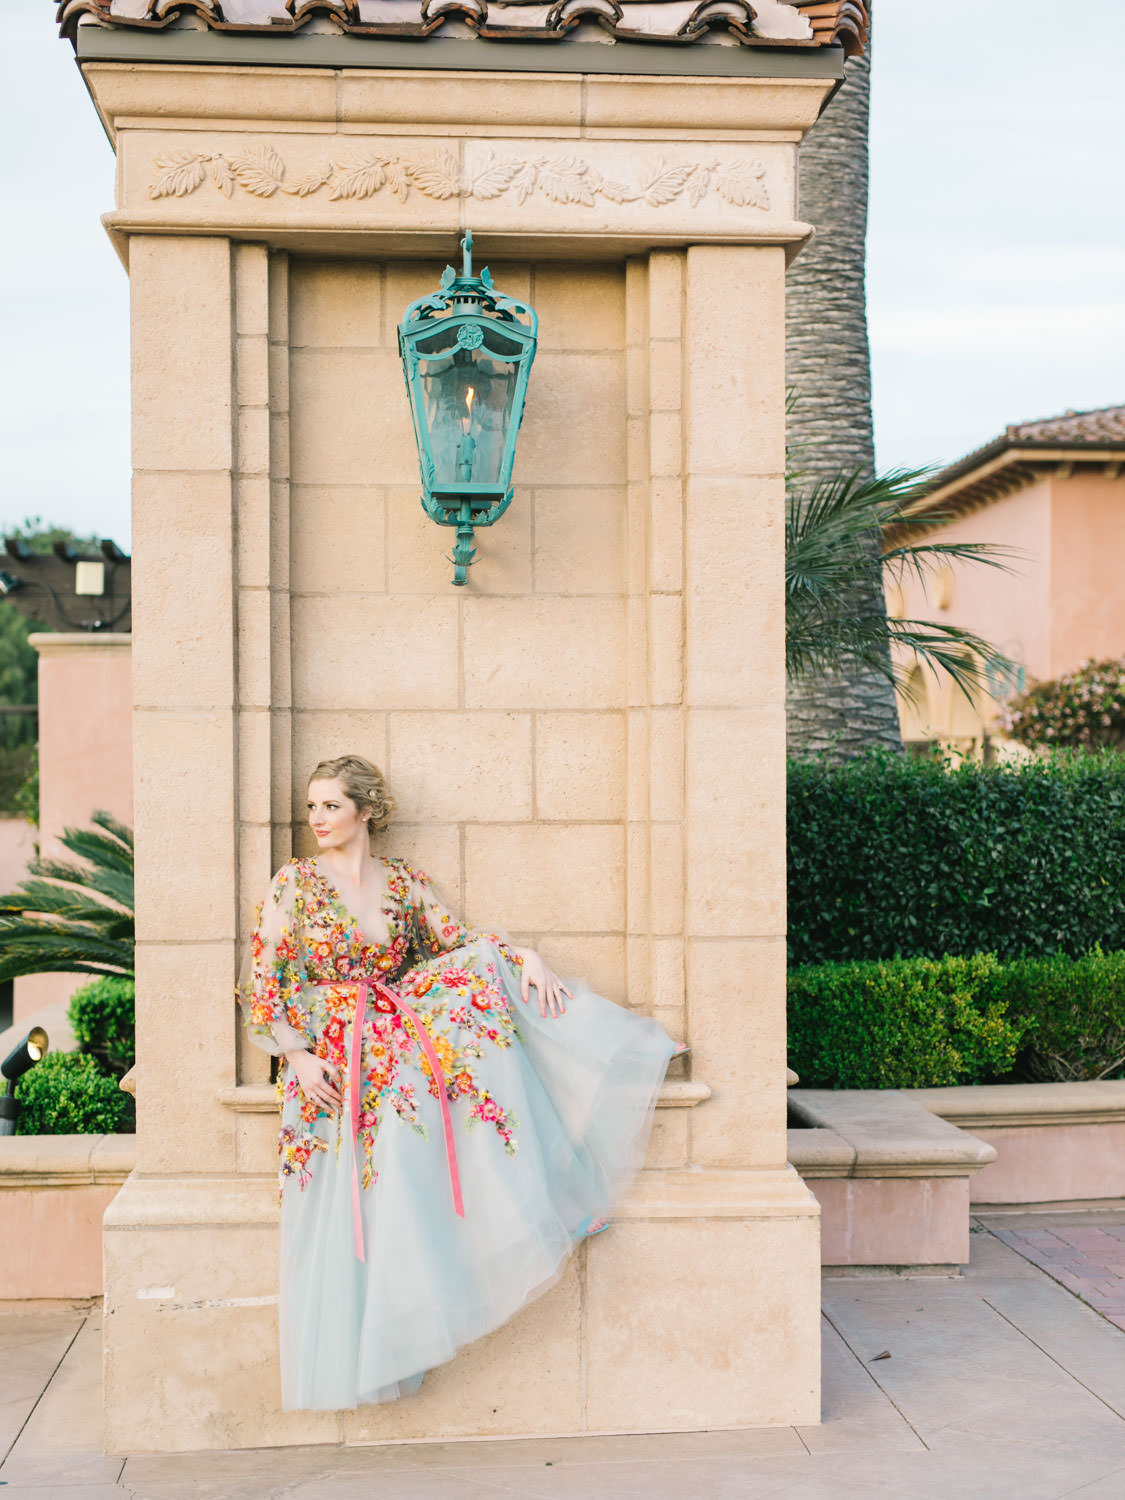 Bride wearing colorful Marchesa wedding gown with blue, pink, yellow, green, and orange floral appliques. Marchesa Resort 2018 long sleeve gown.